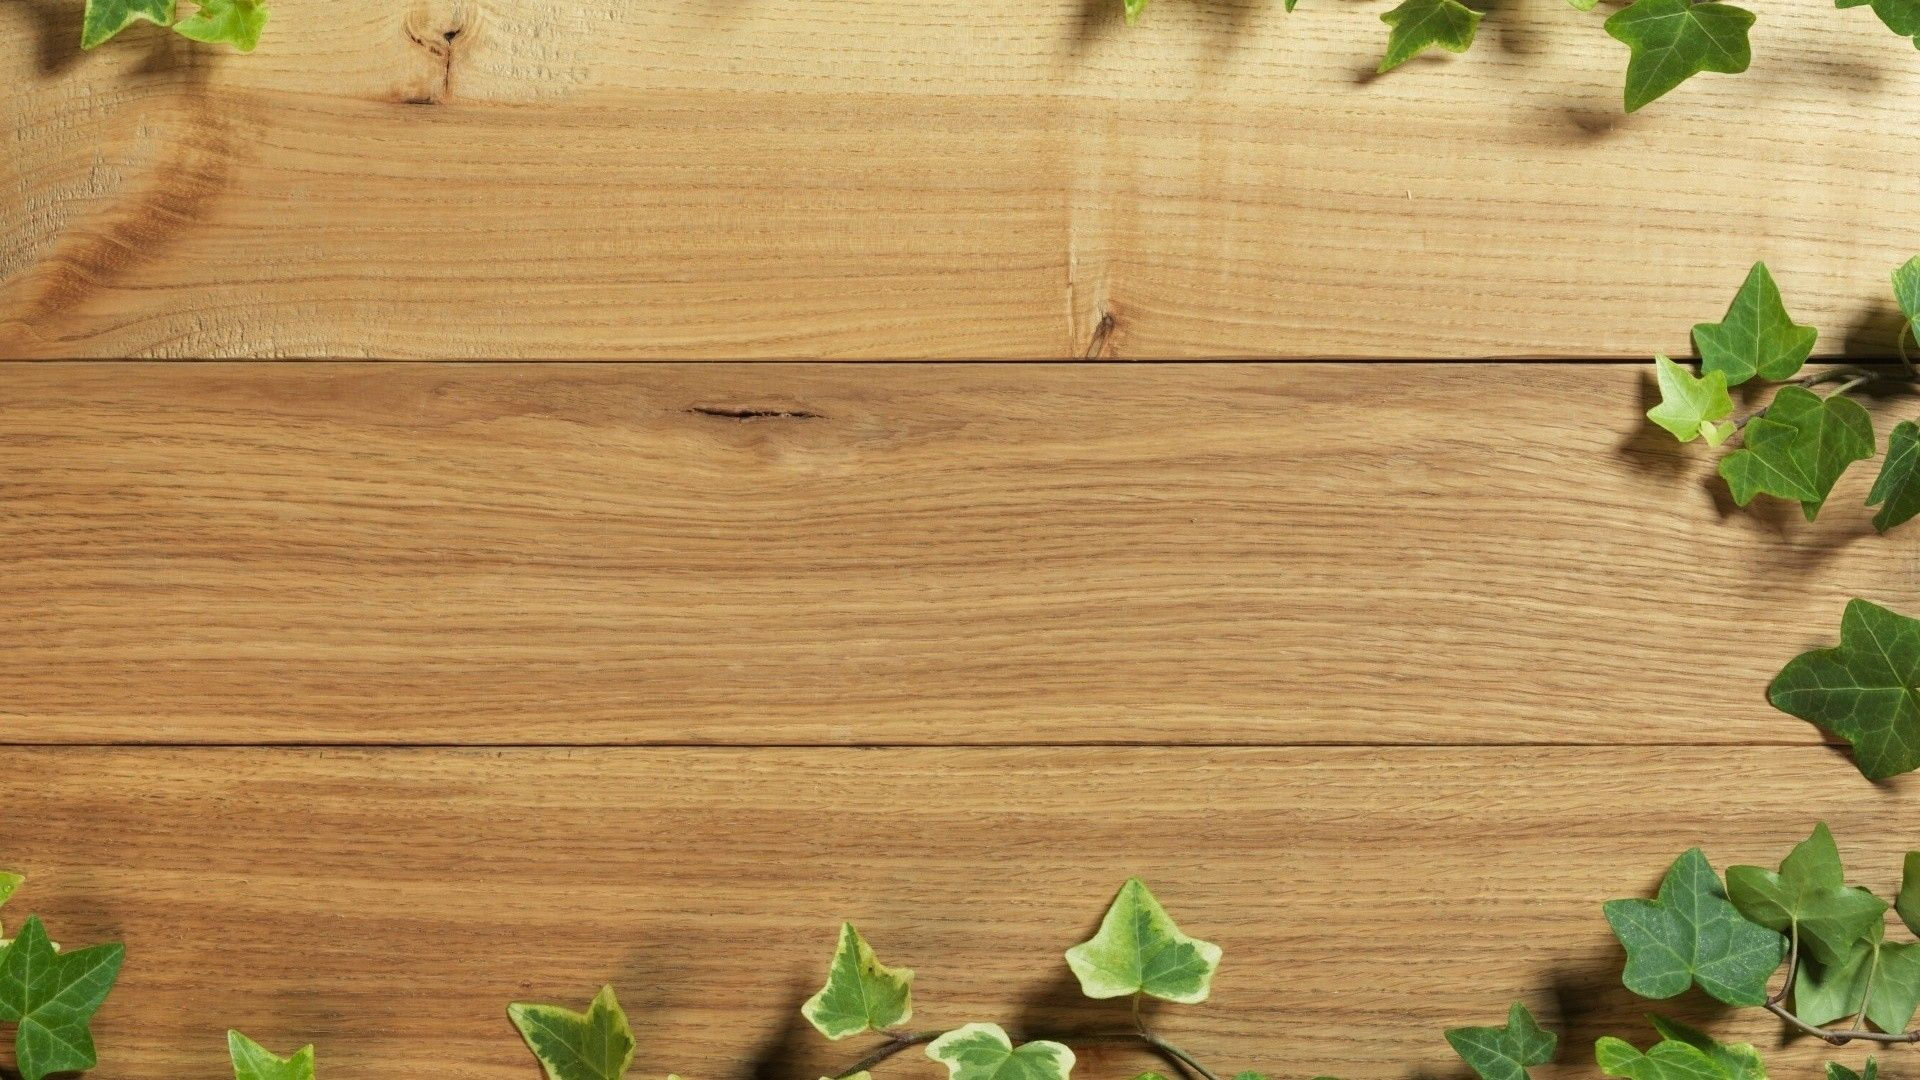 Wood Tables Textures Ivy Board / 1920x1080 Wallpaper